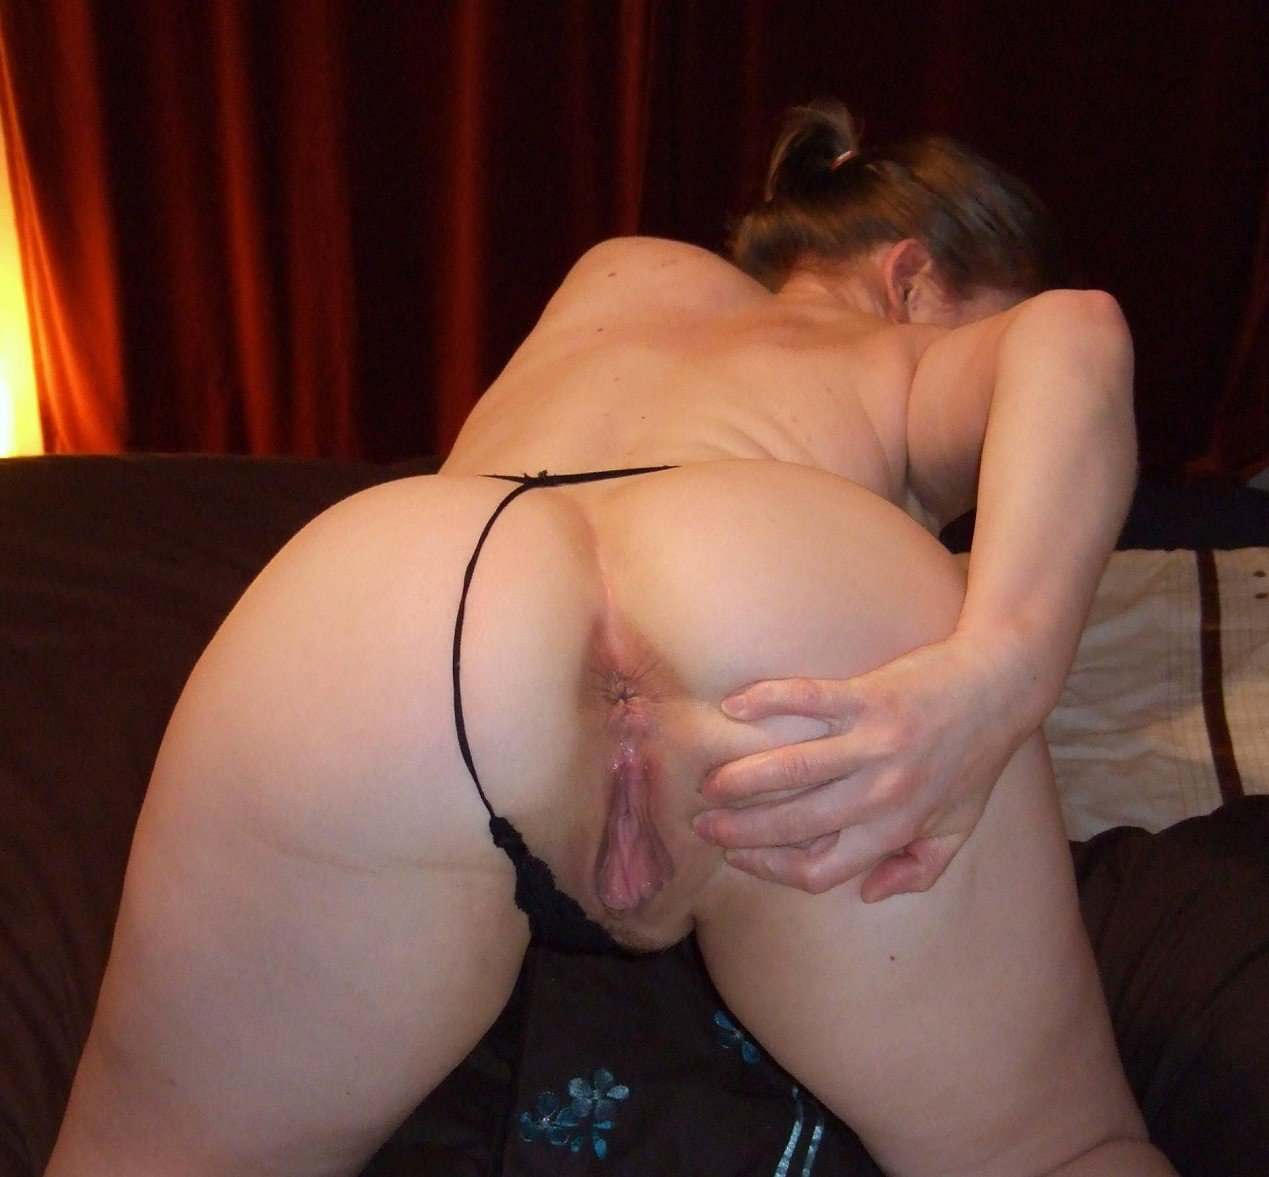 Amateur blow job cum shot 8